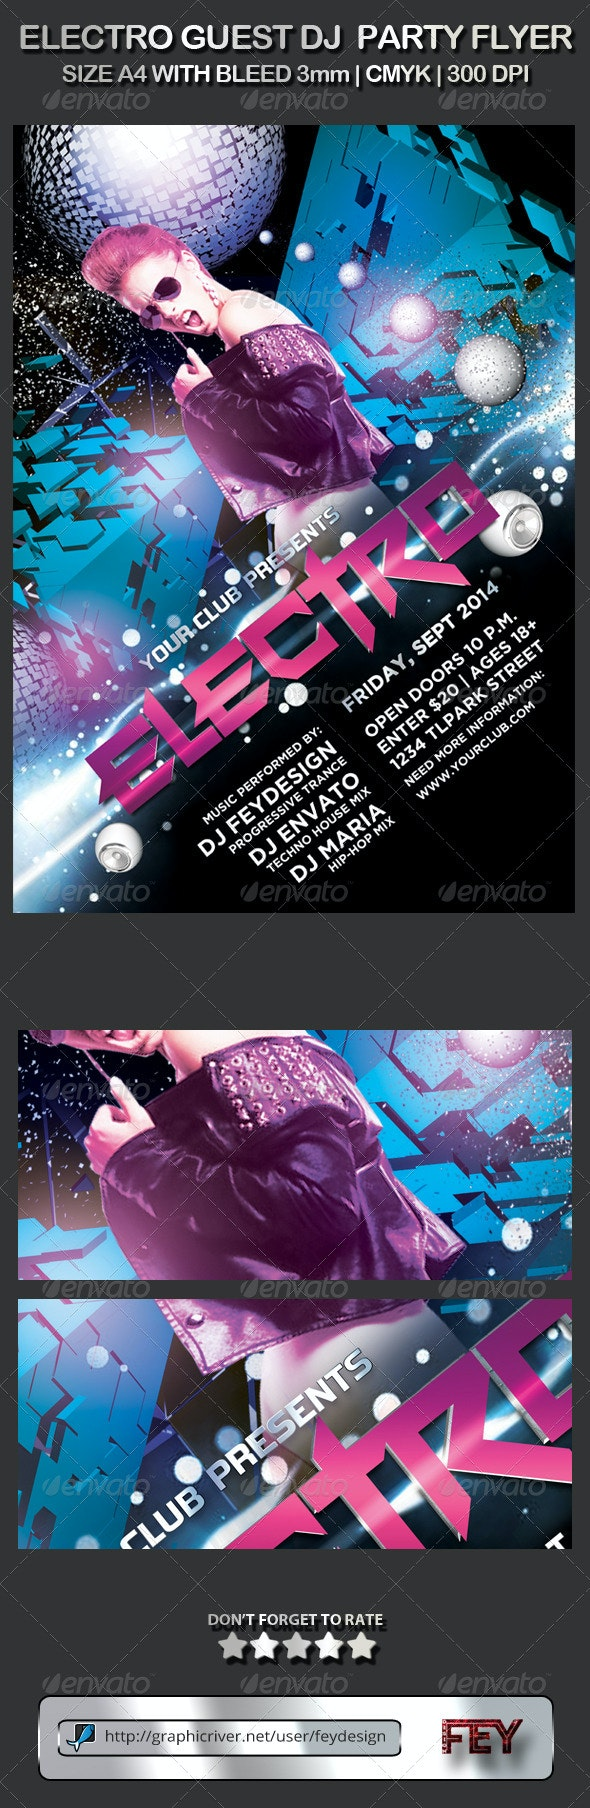 Electro Guest DJ Party Flyer - Events Flyers